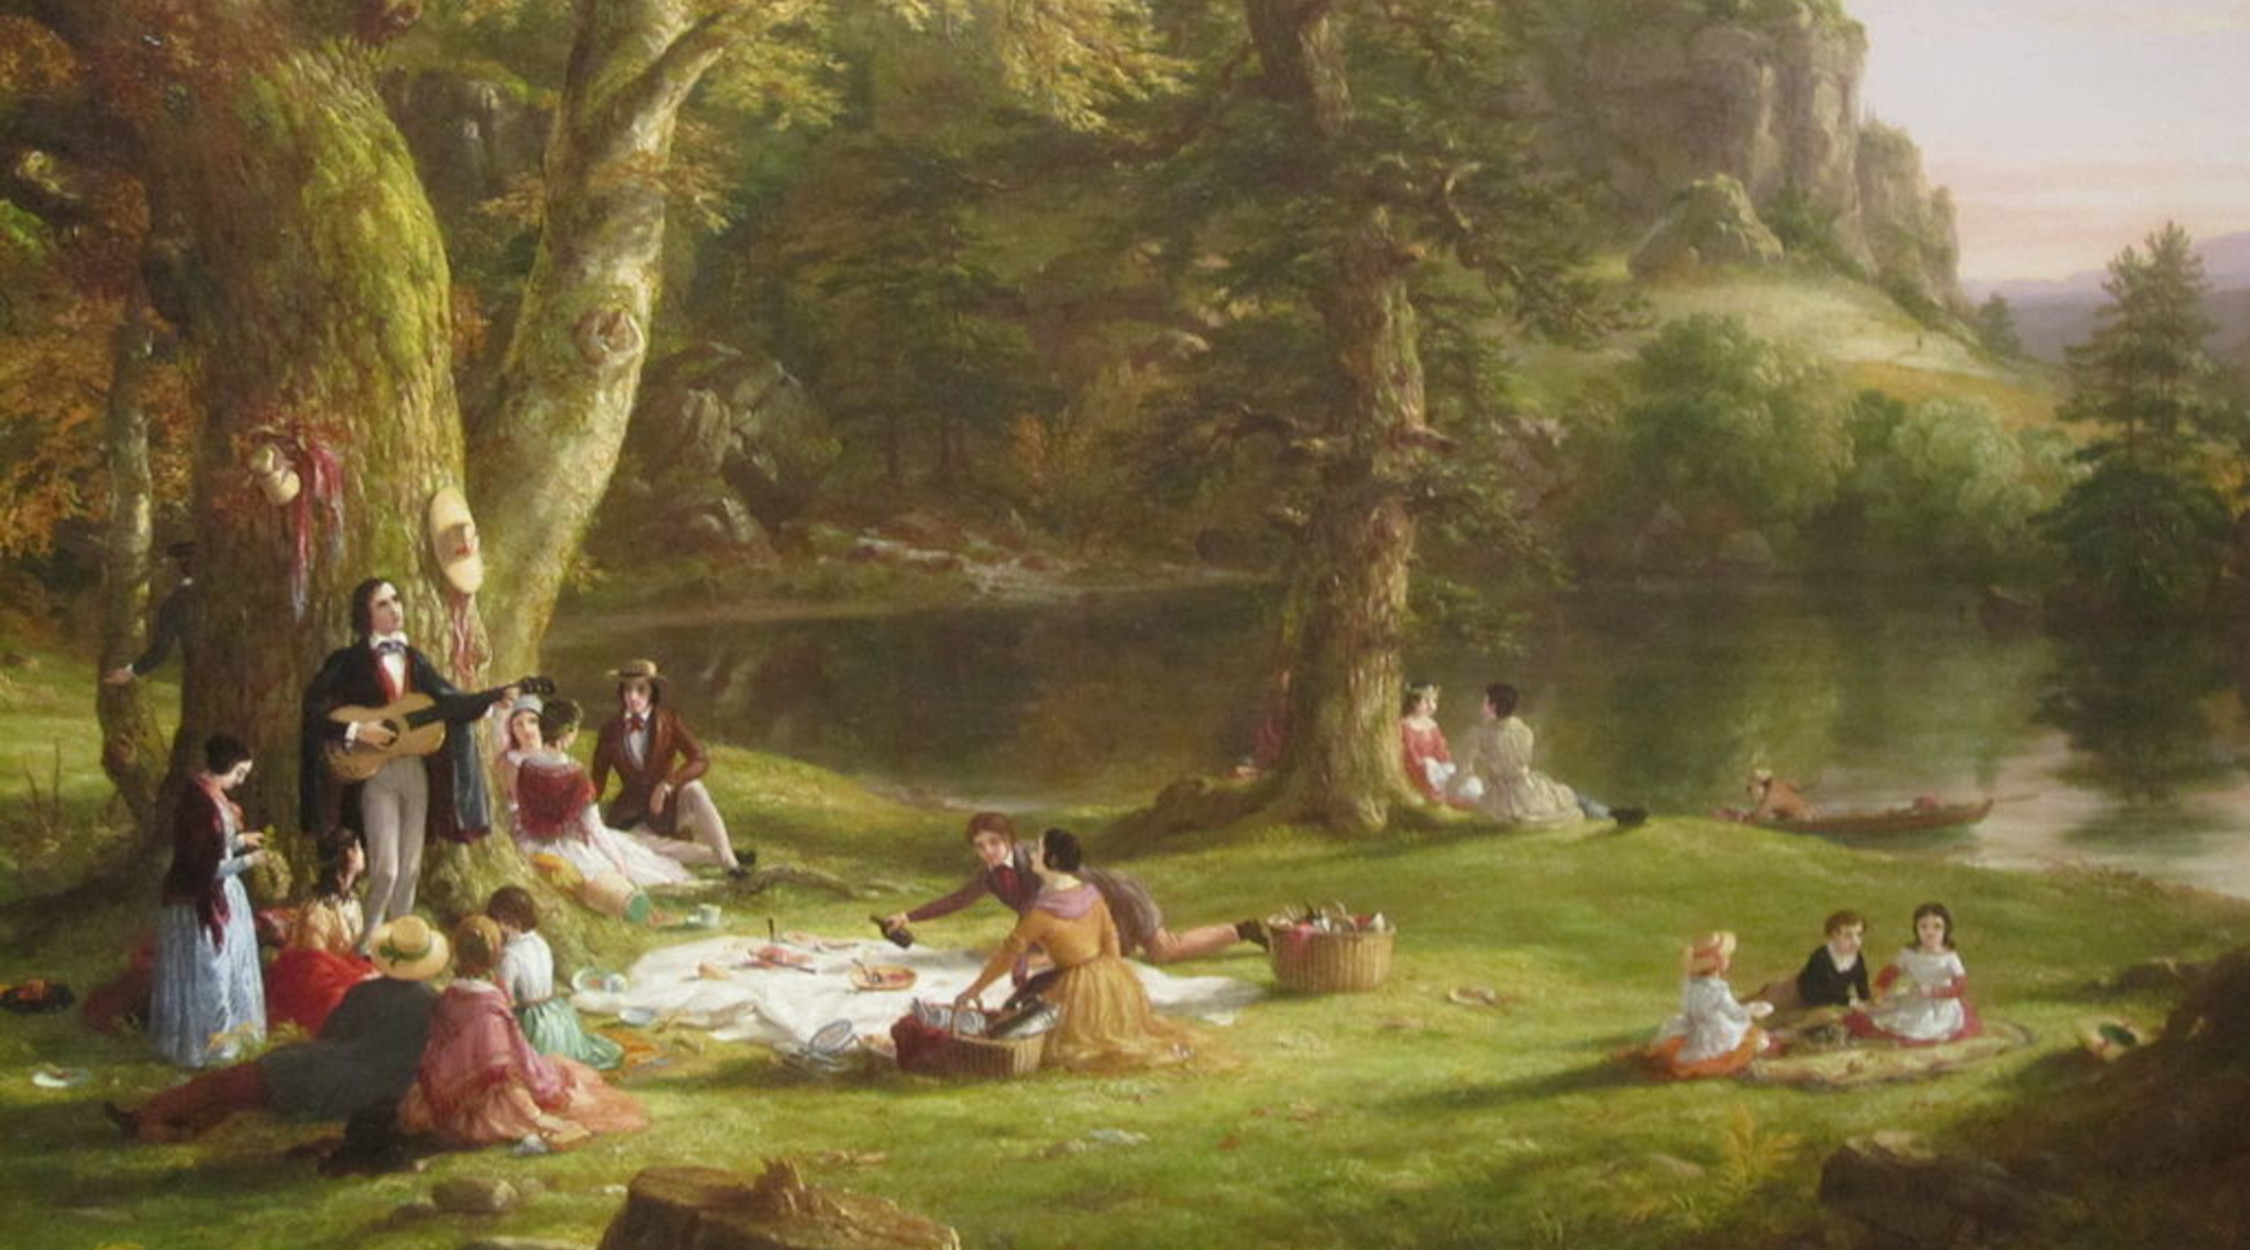 The Picnic   Thomas Cole   1846   Brooklyn Museum